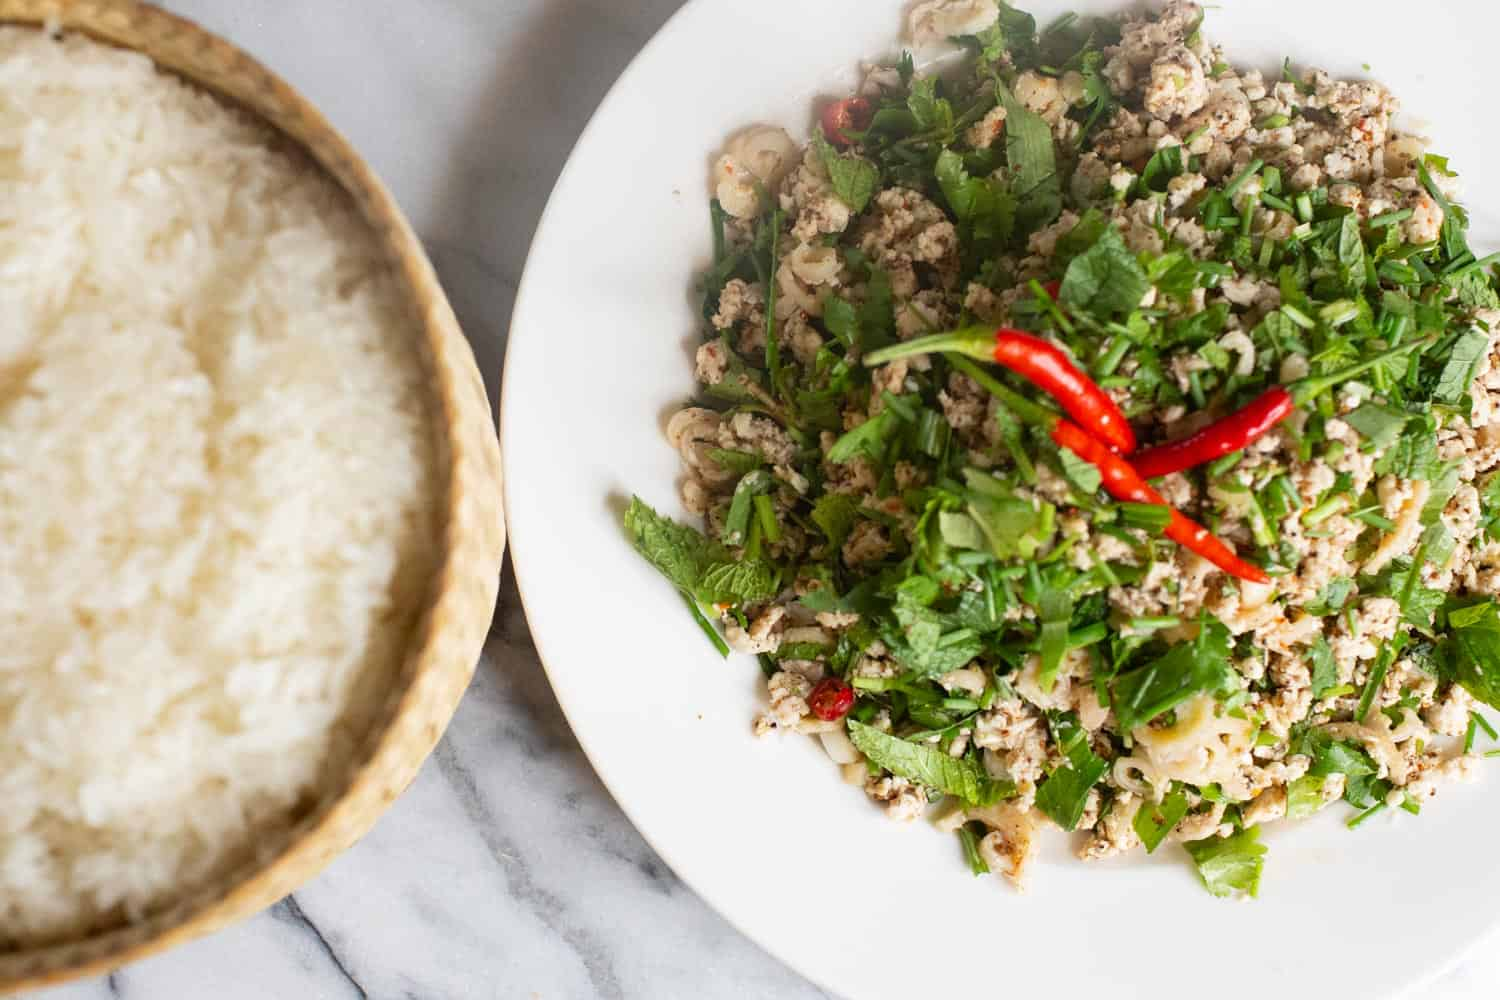 laos larb with sticky rice